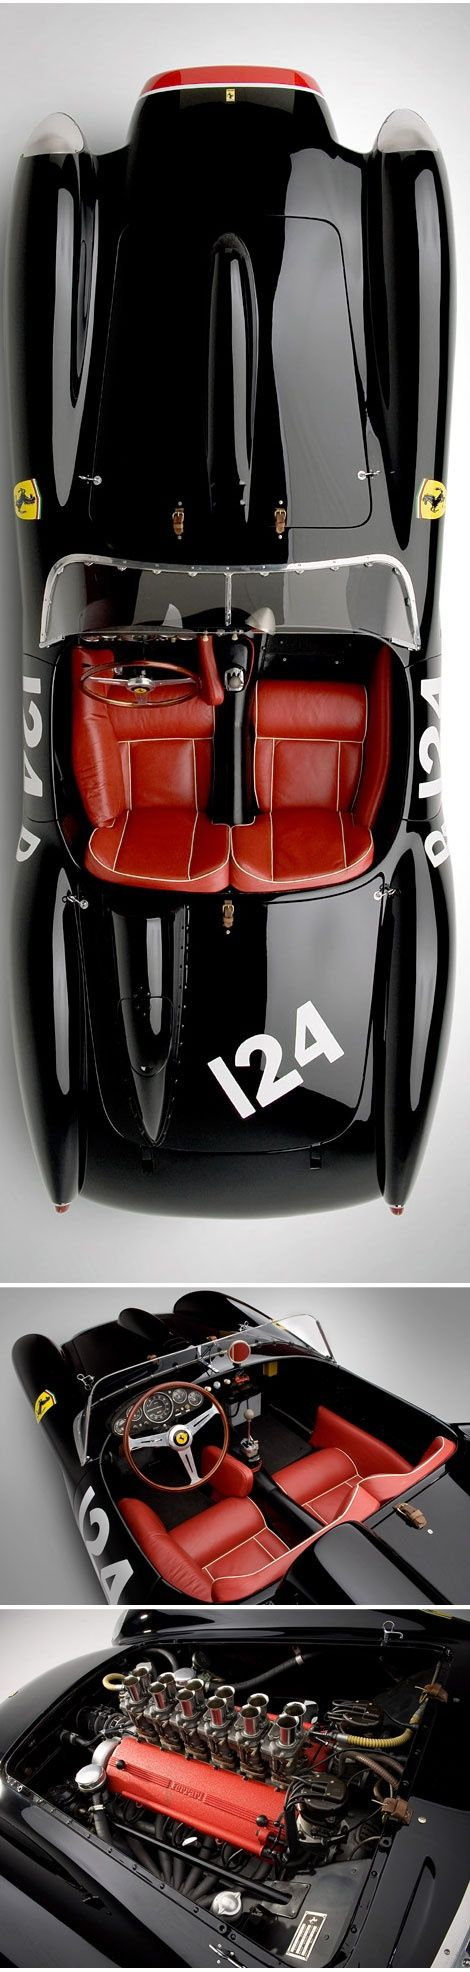 Incredible! The #Ferrari 250 TR sells for $40m! Find out more by hitting the image #classiccars